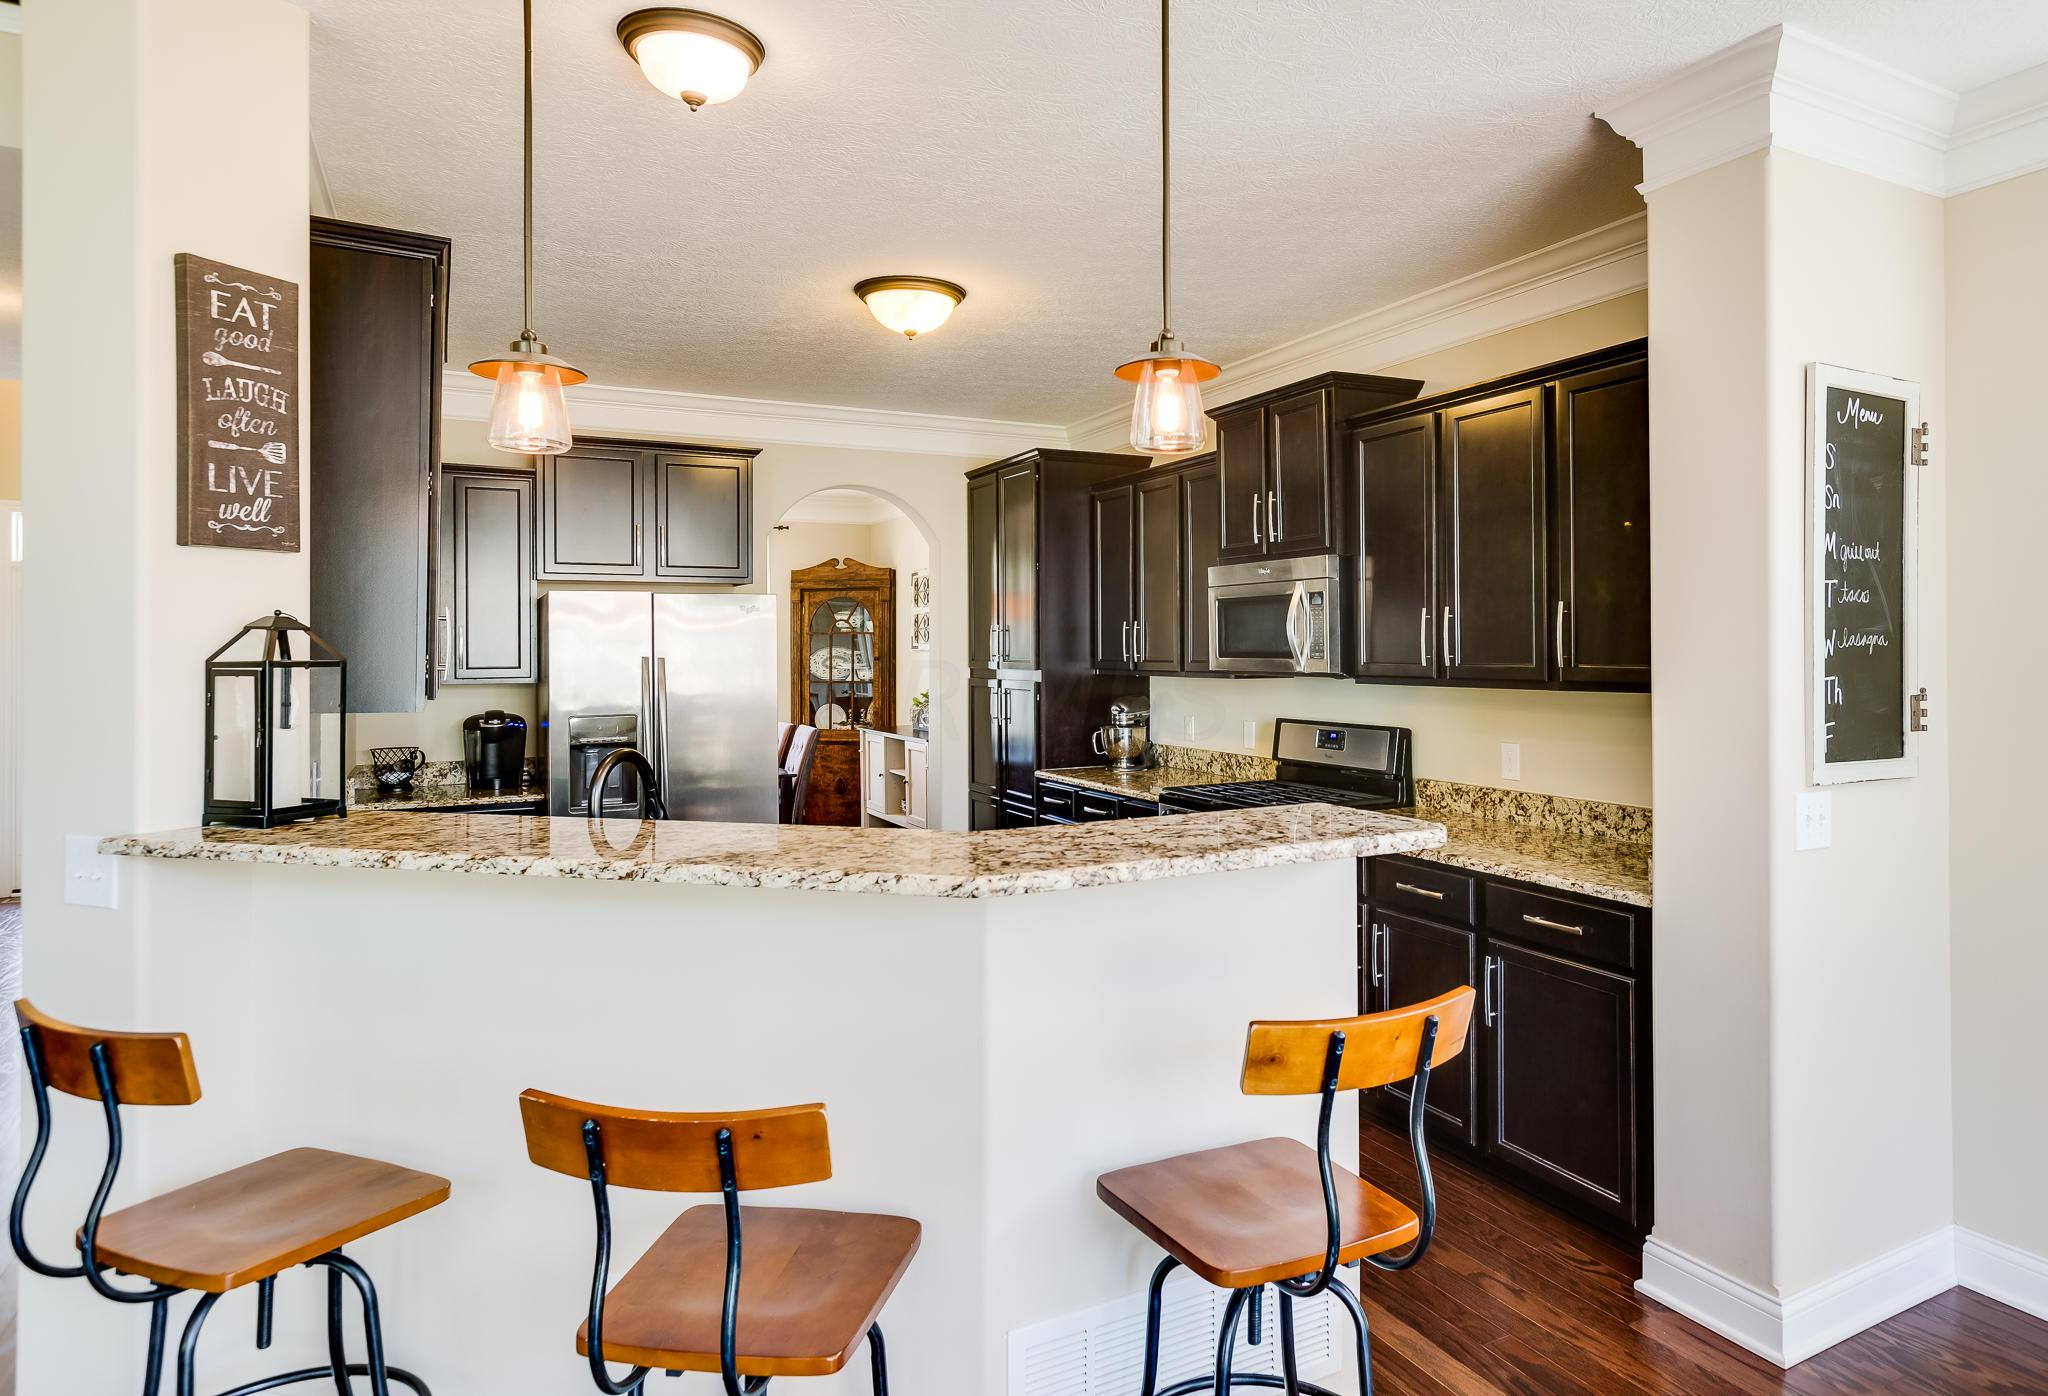 6206 Baumeister Drive, Hilliard, Ohio 43026, 4 Bedrooms Bedrooms, ,3 BathroomsBathrooms,Residential,For Sale,Baumeister,220020672